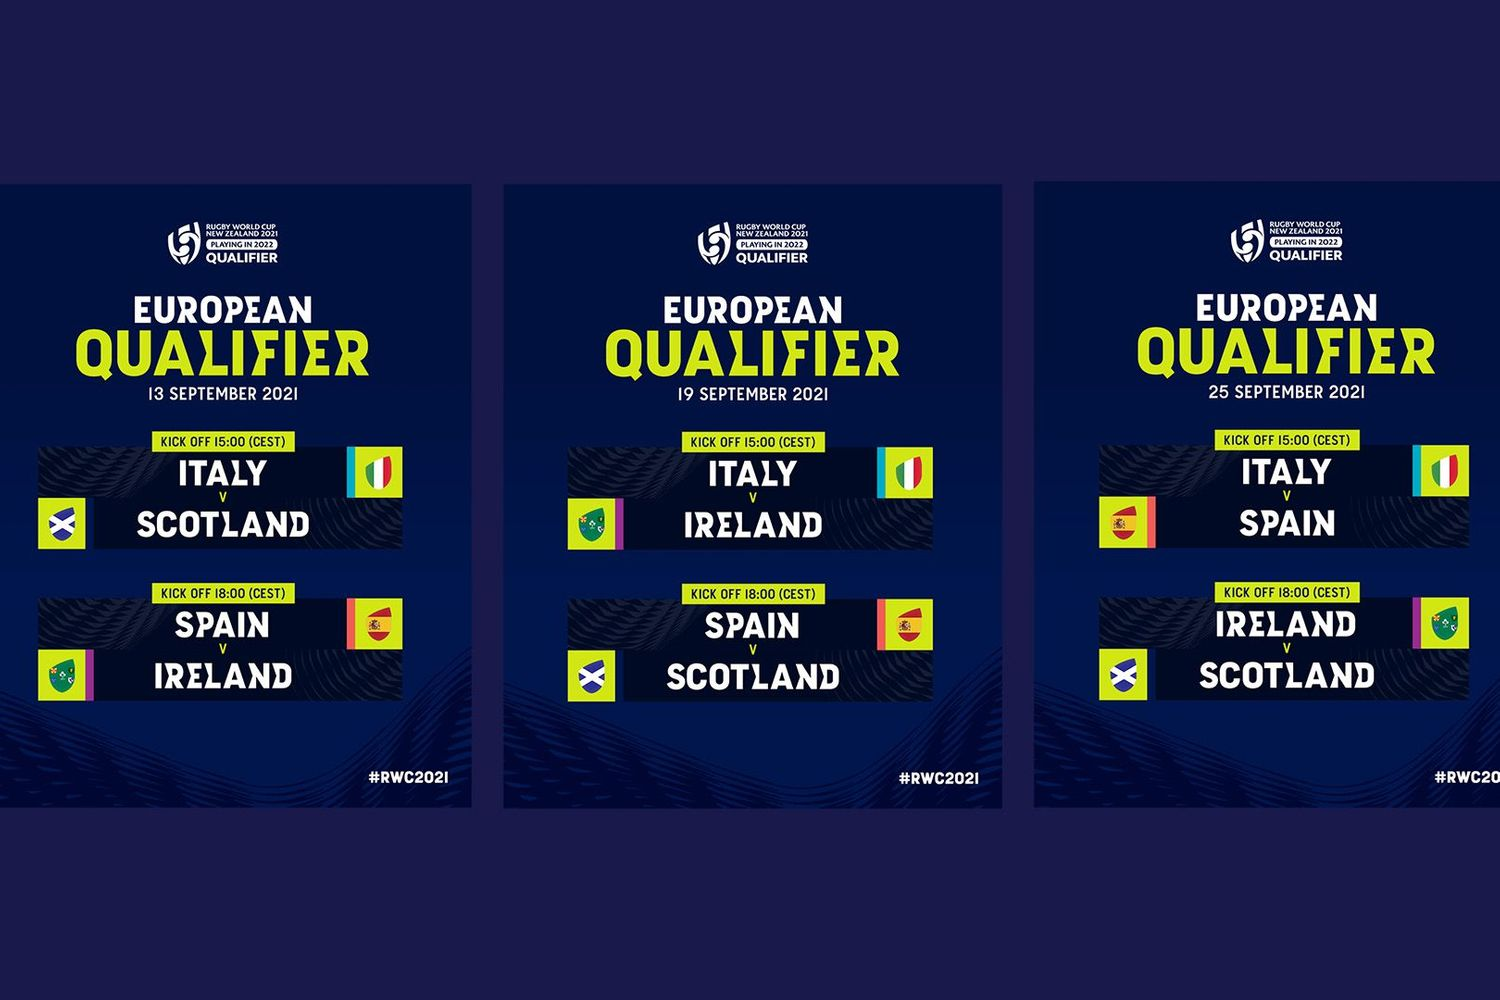 Rugby World Cup 2021 - European qualifying